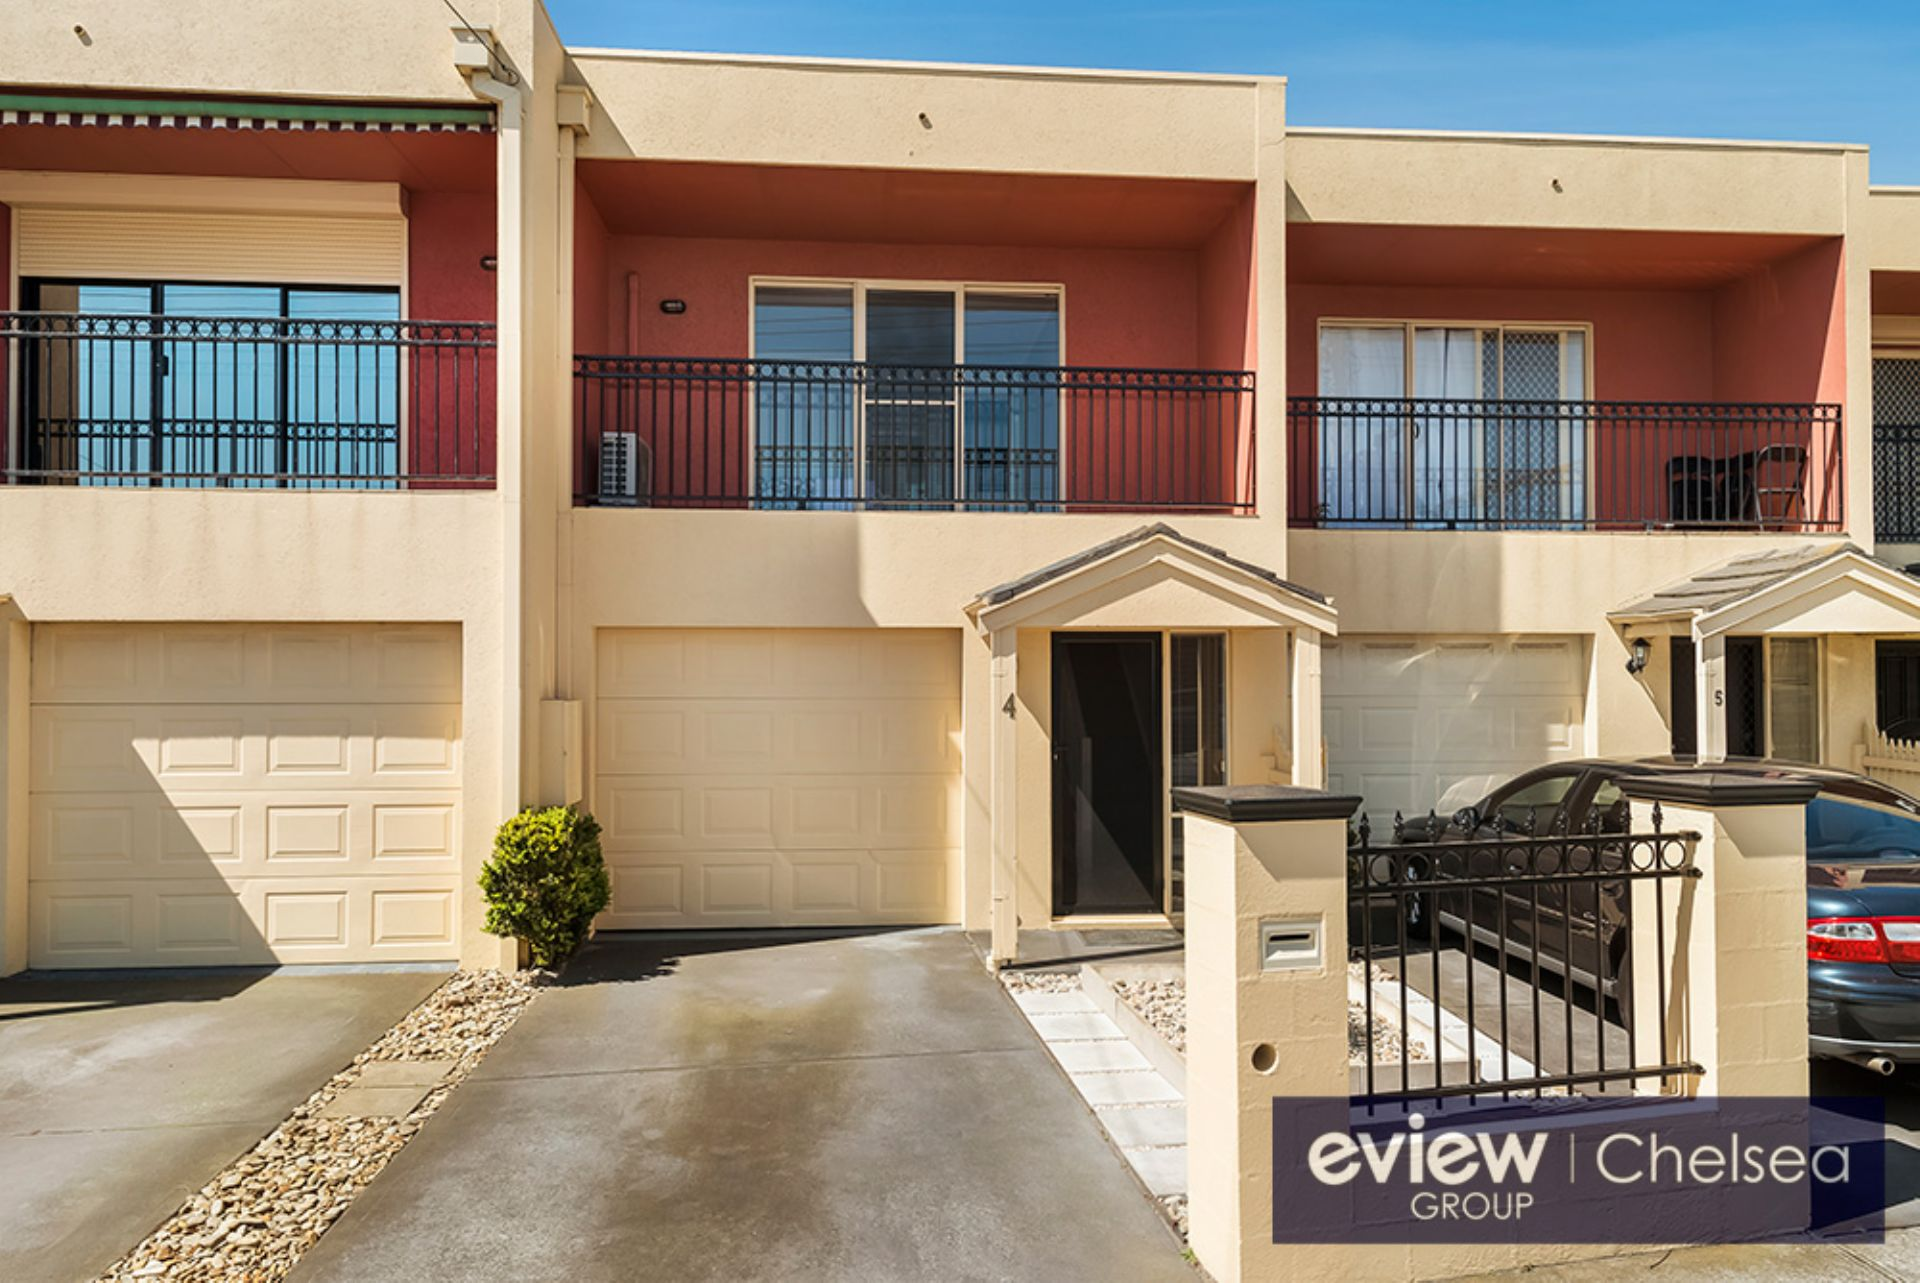 4/499 Station Street, CARRUM, VIC, 3197 - Image